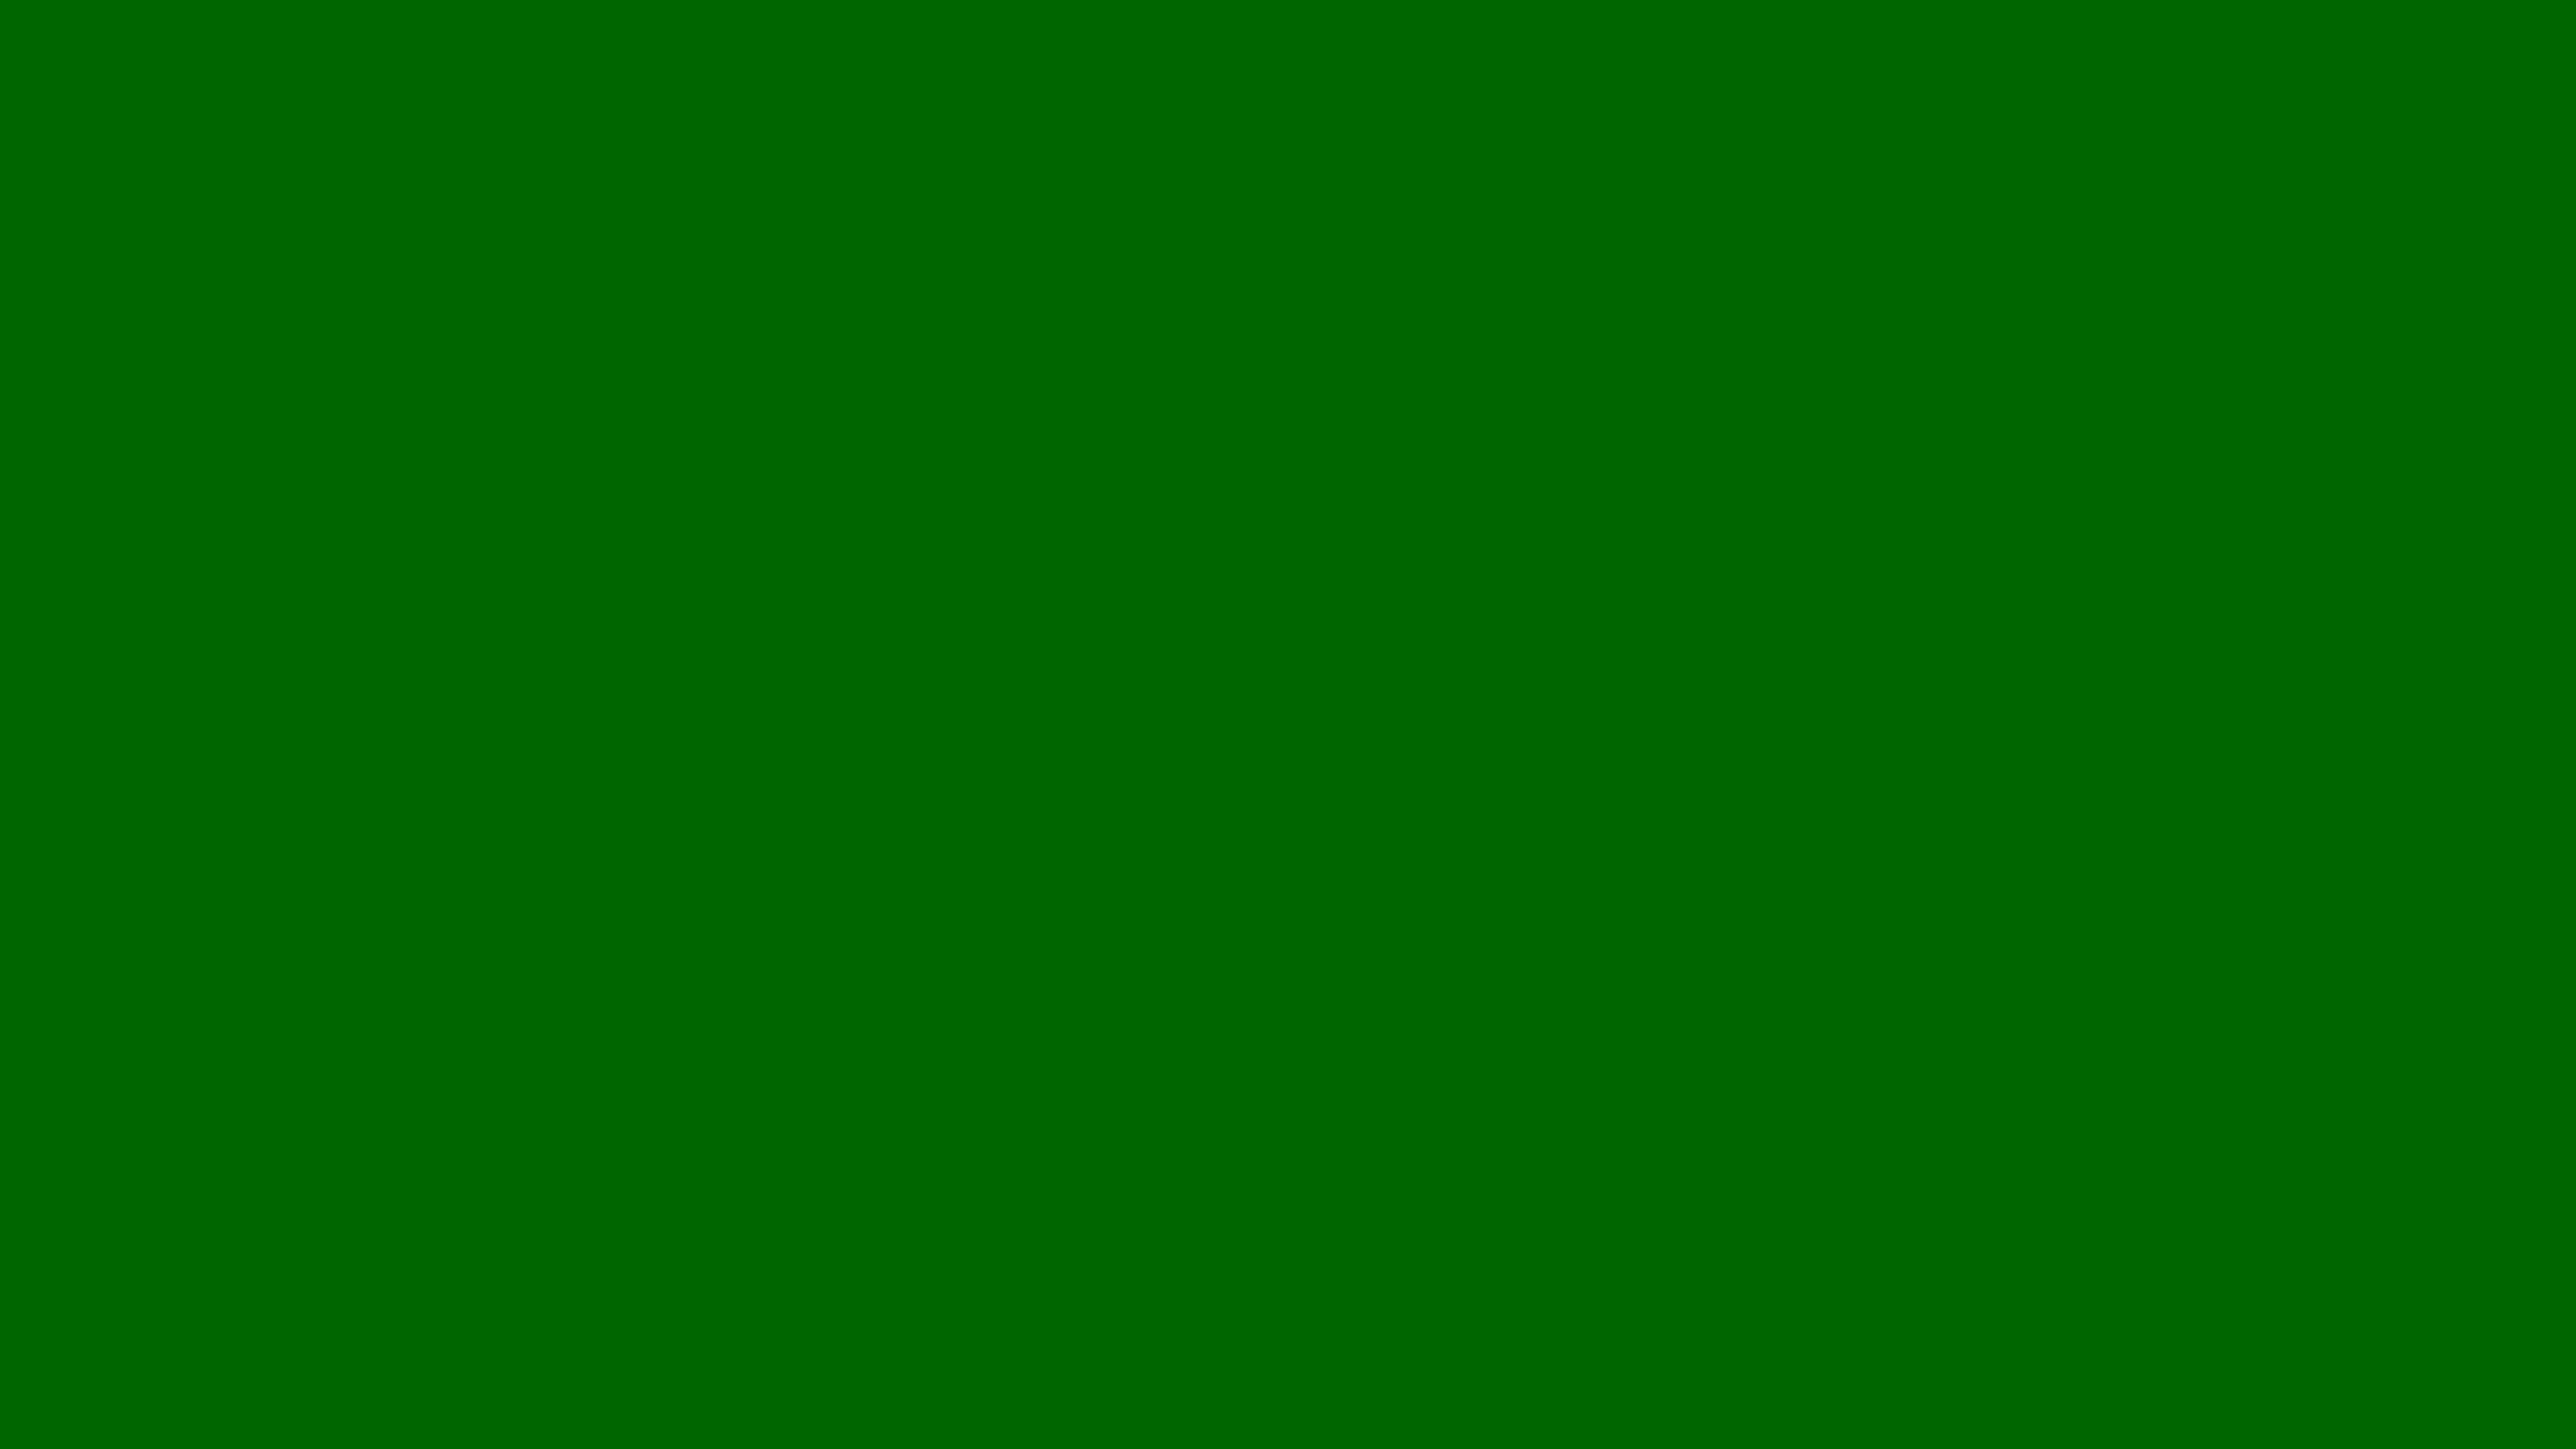 3840x2160 Pakistan Green Solid Color Background